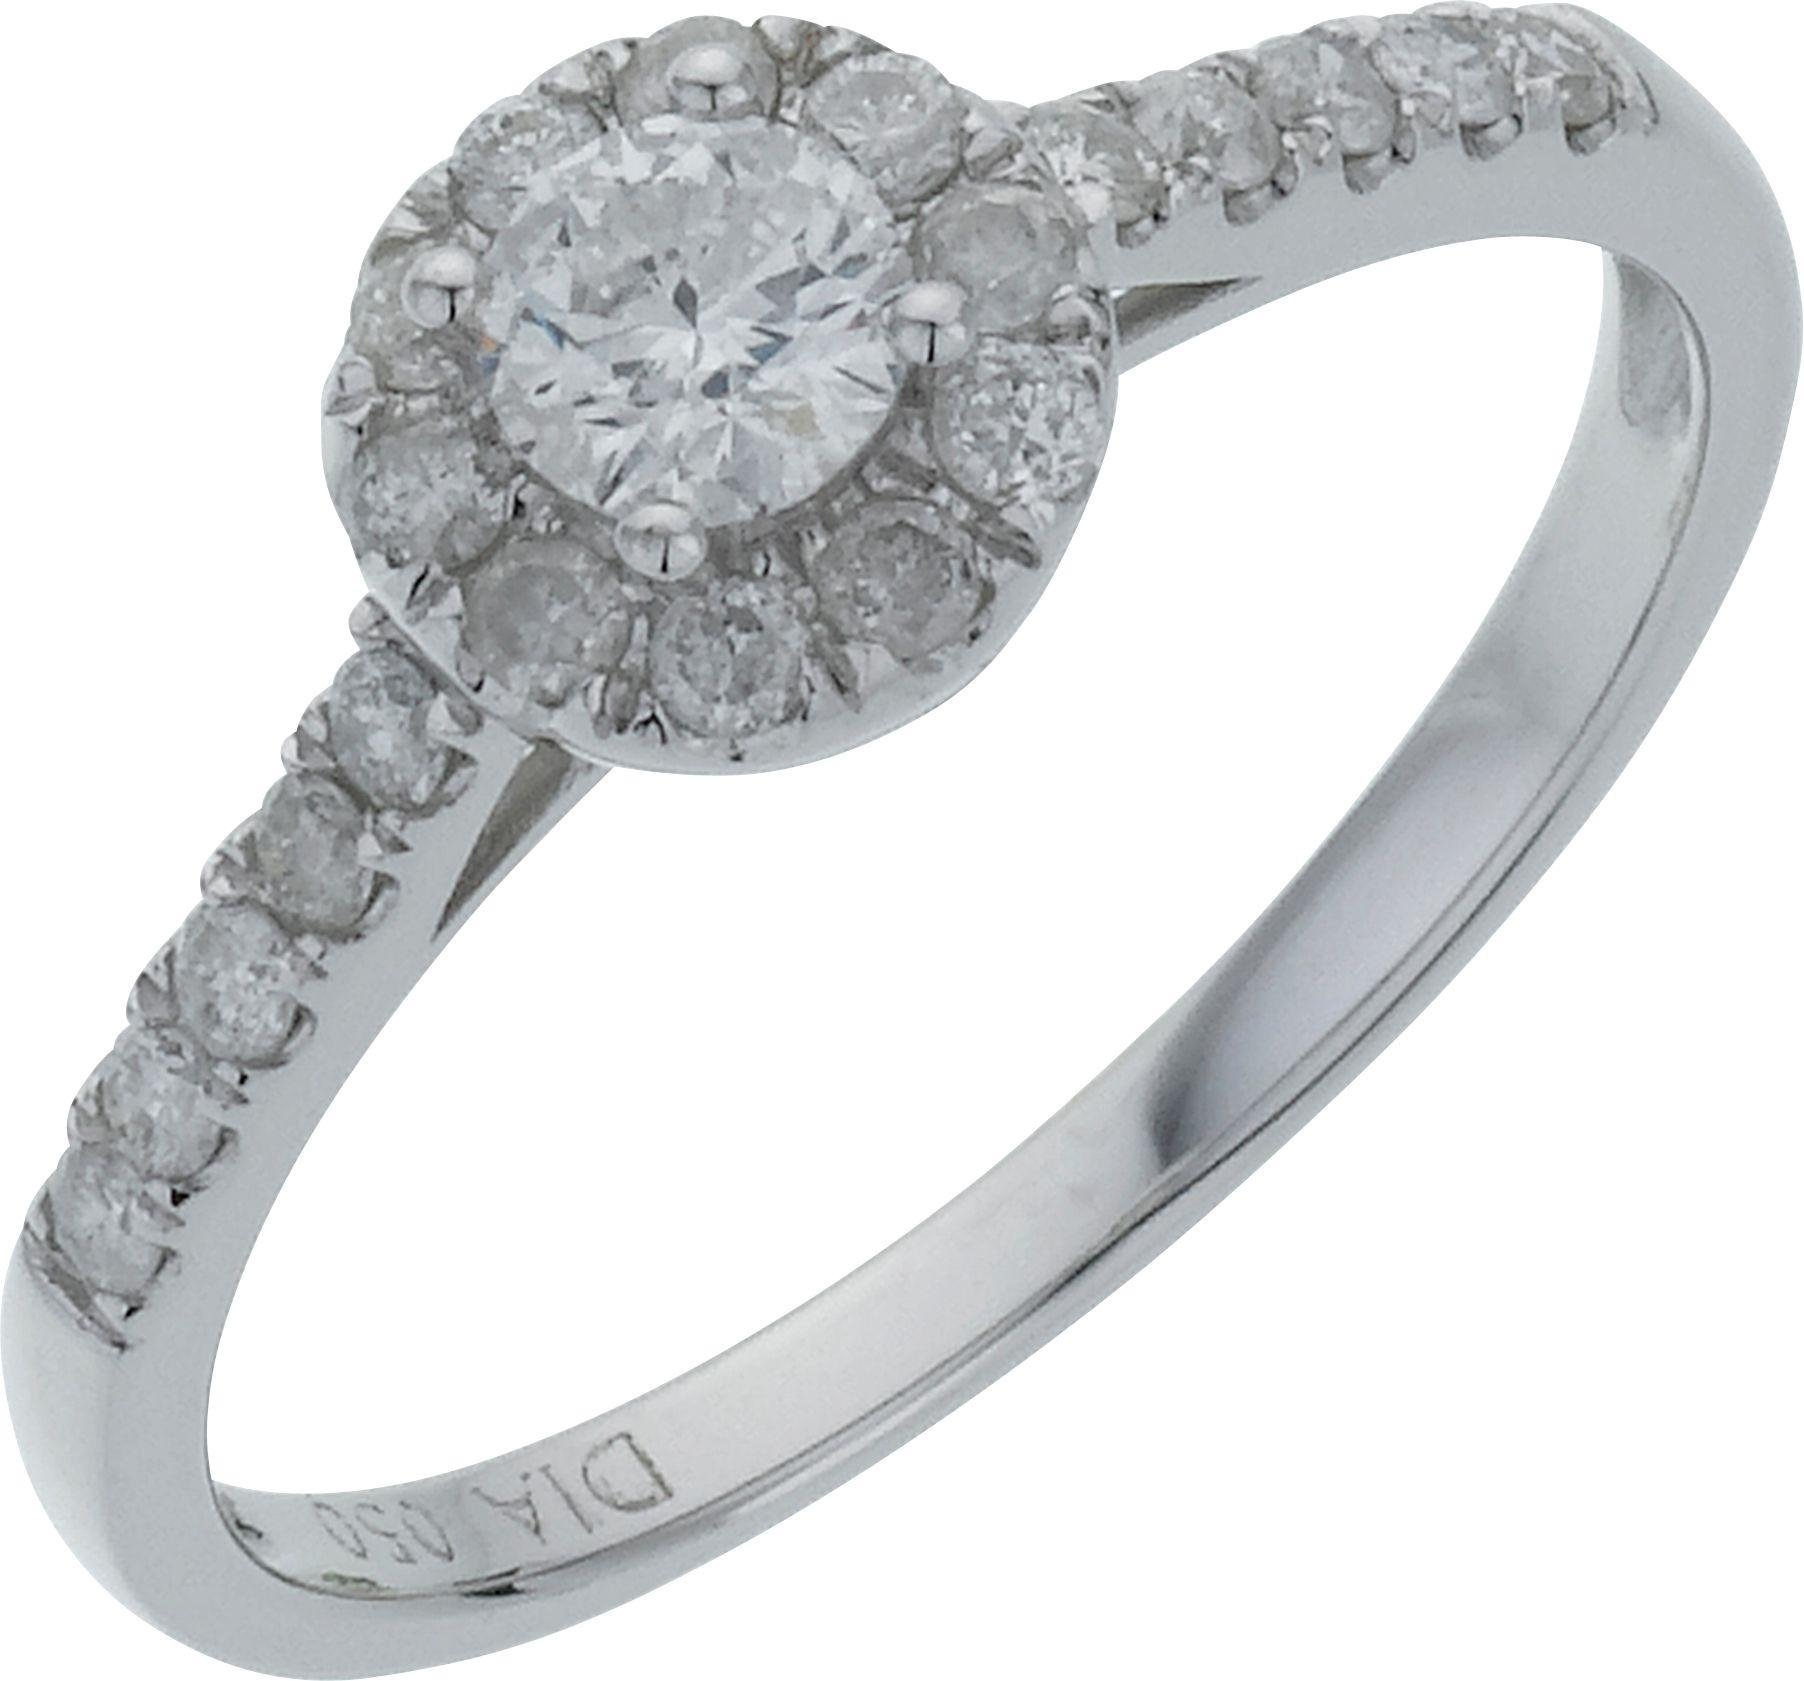 Everlasting Love 18 Carat White Gold Round Diamond - Halo Ring - Size M